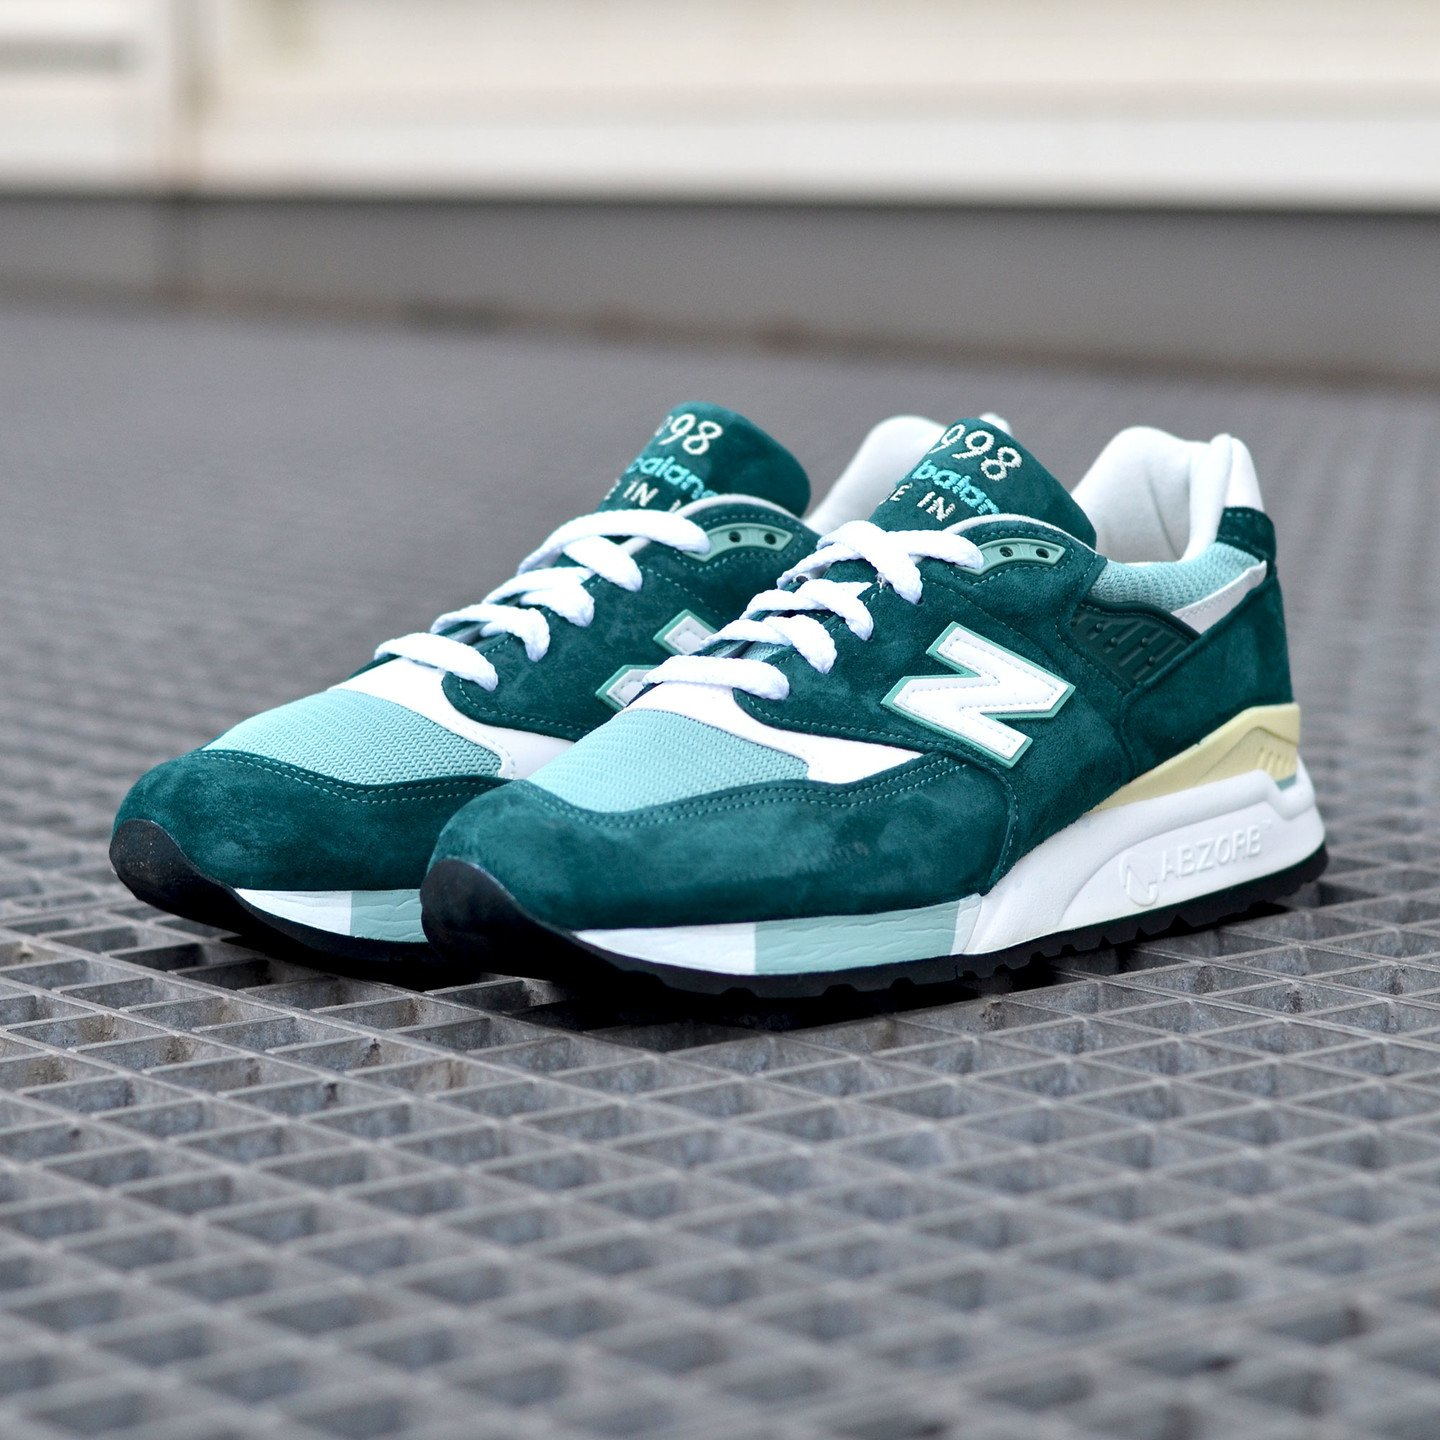 New Balance M998 Made in USA Sea Green / White M998CSAM-42